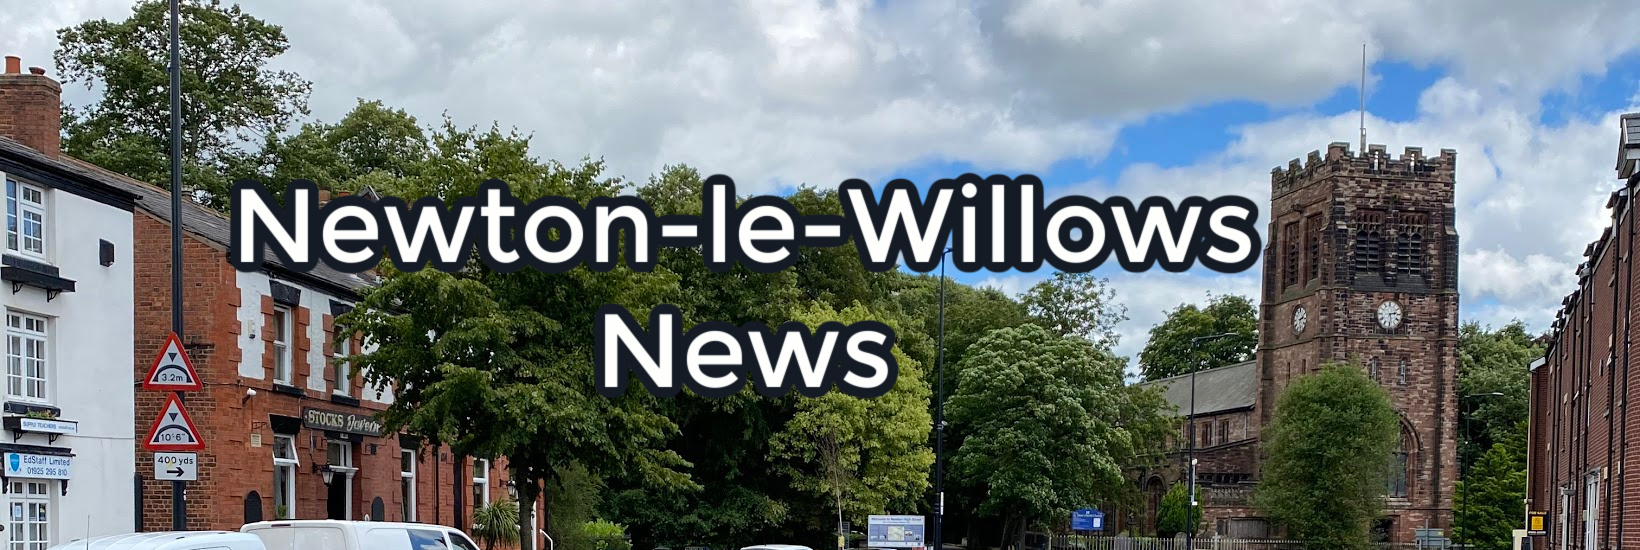 Newton-le-Willows News